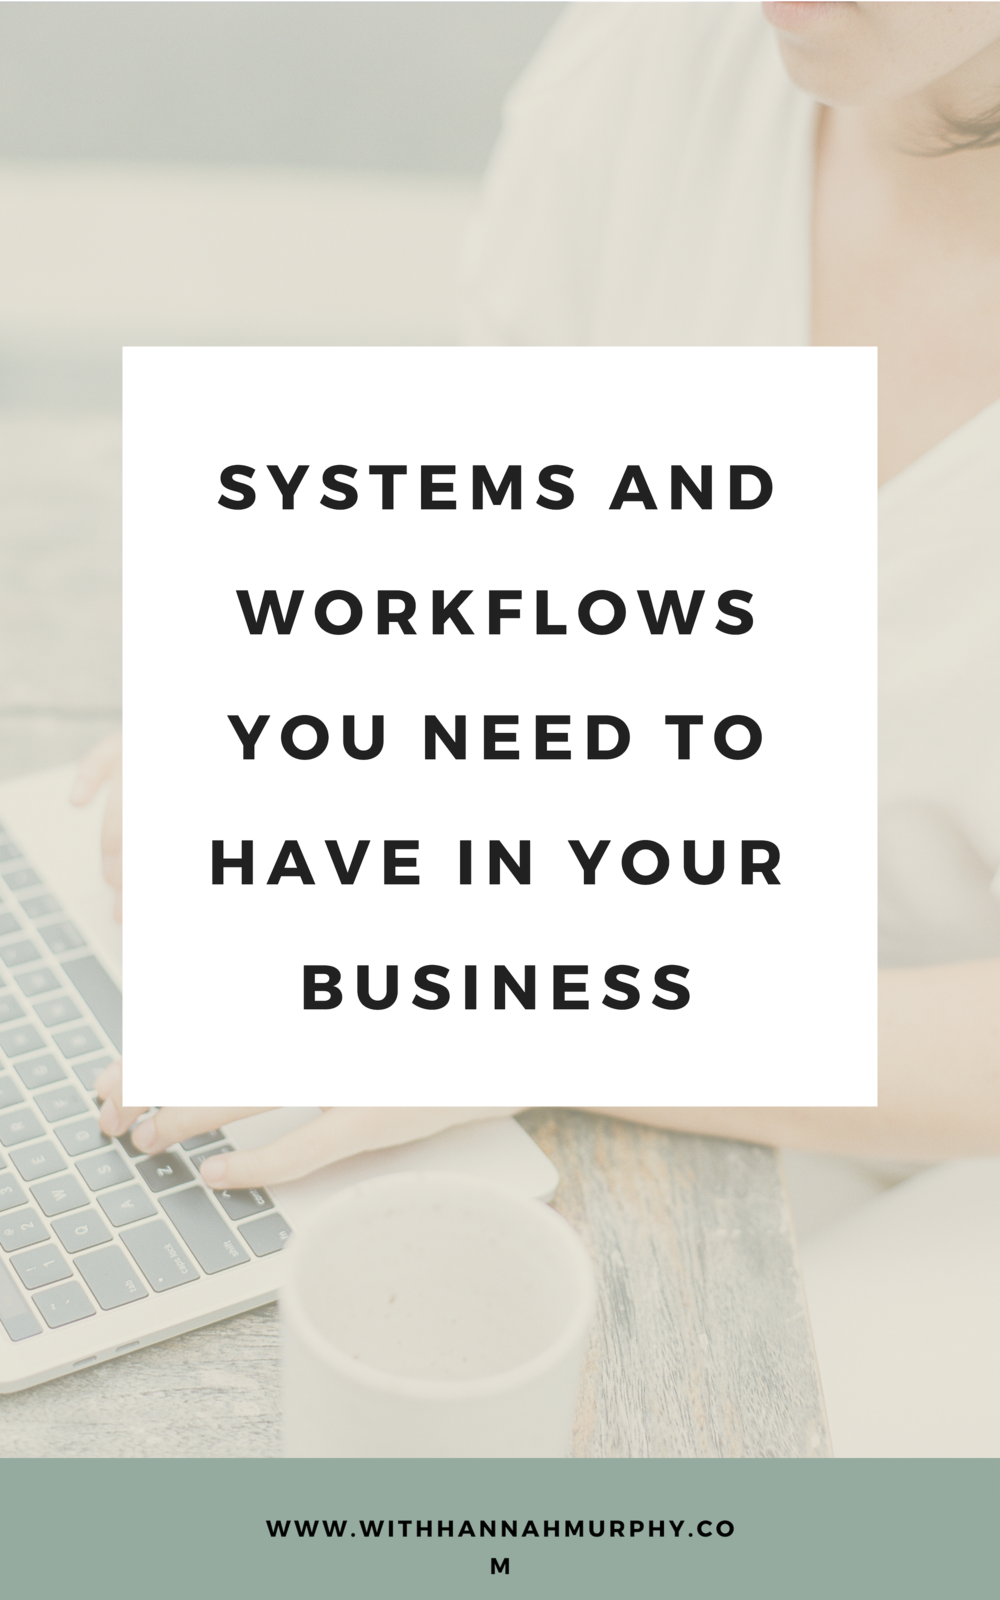 Systems and workflows you need to have in your business   With Hannah Murphy #creativeresources #businesstips #systems